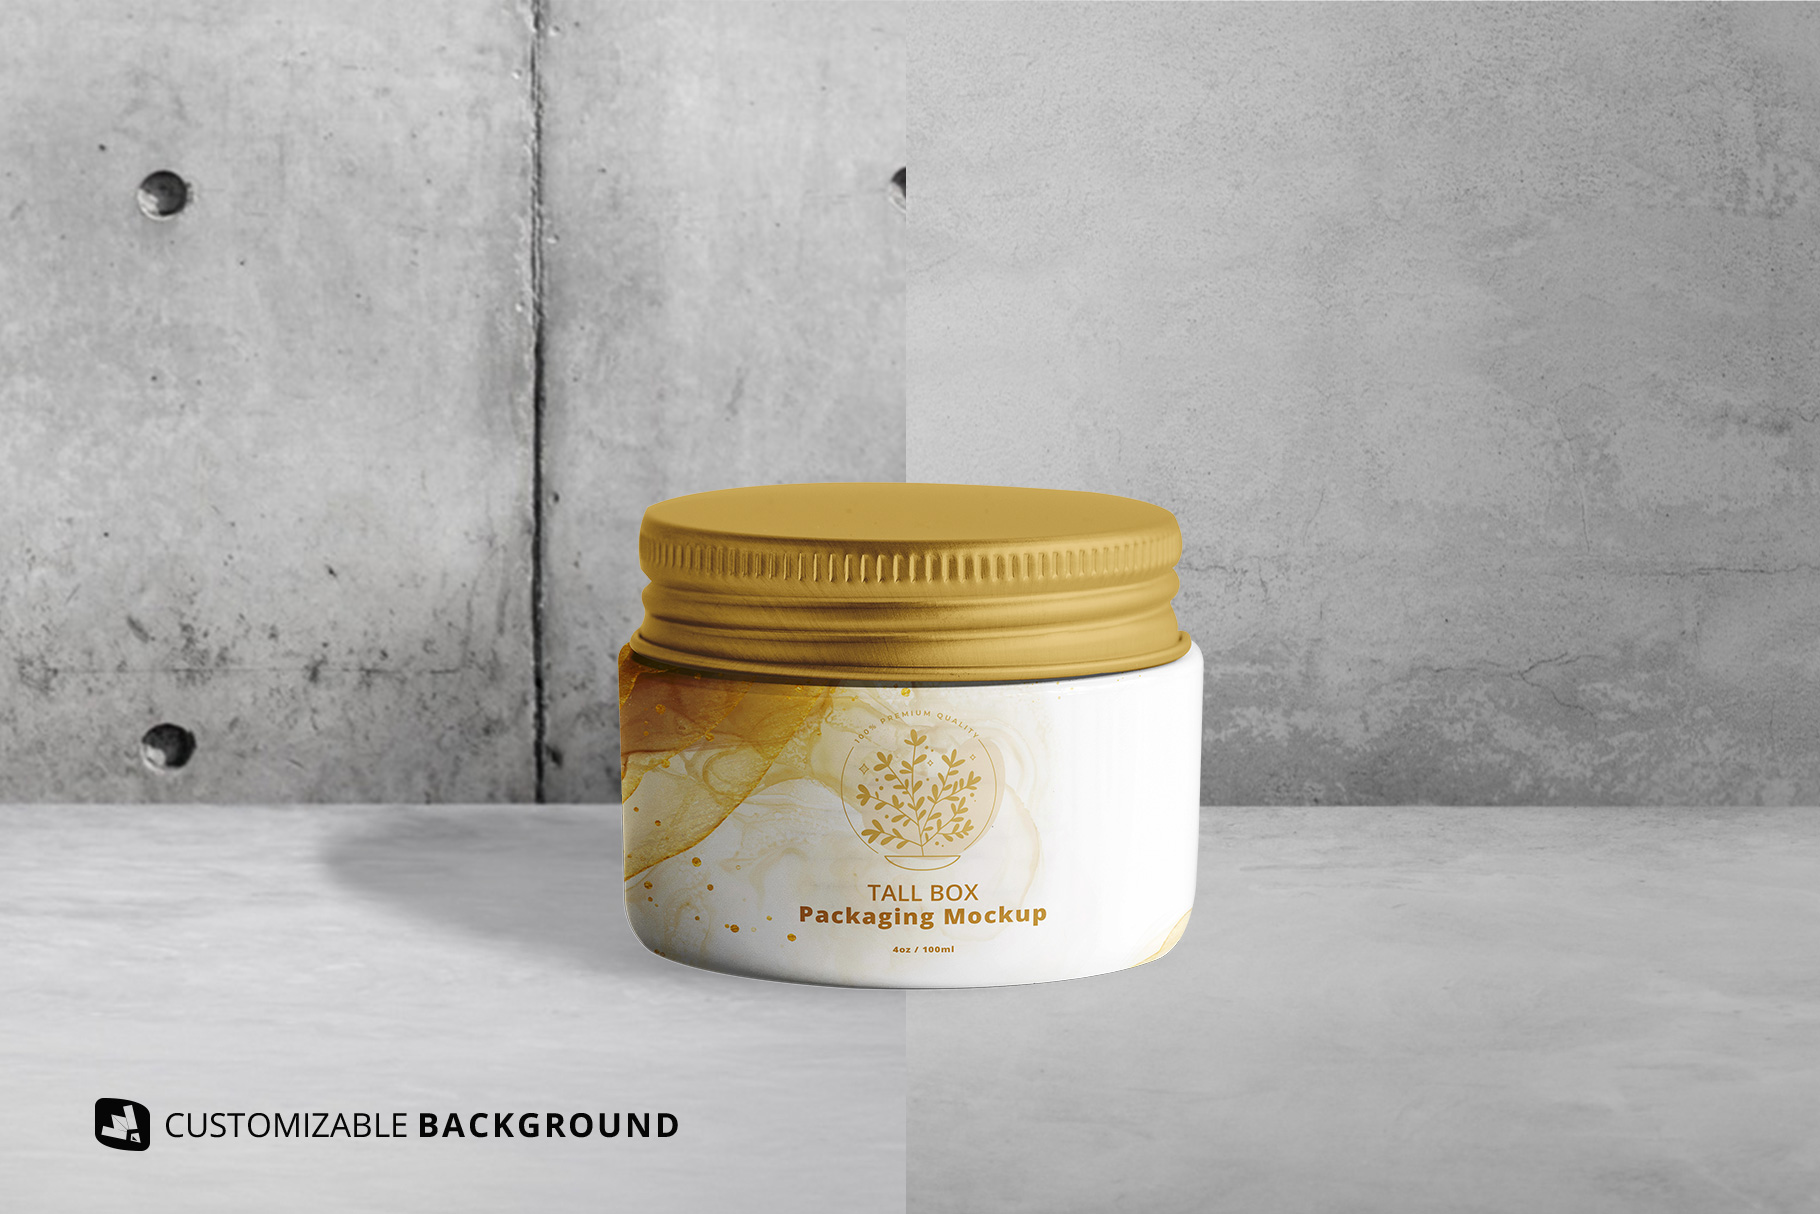 background options of the glass cosmetic jar packaging mockup